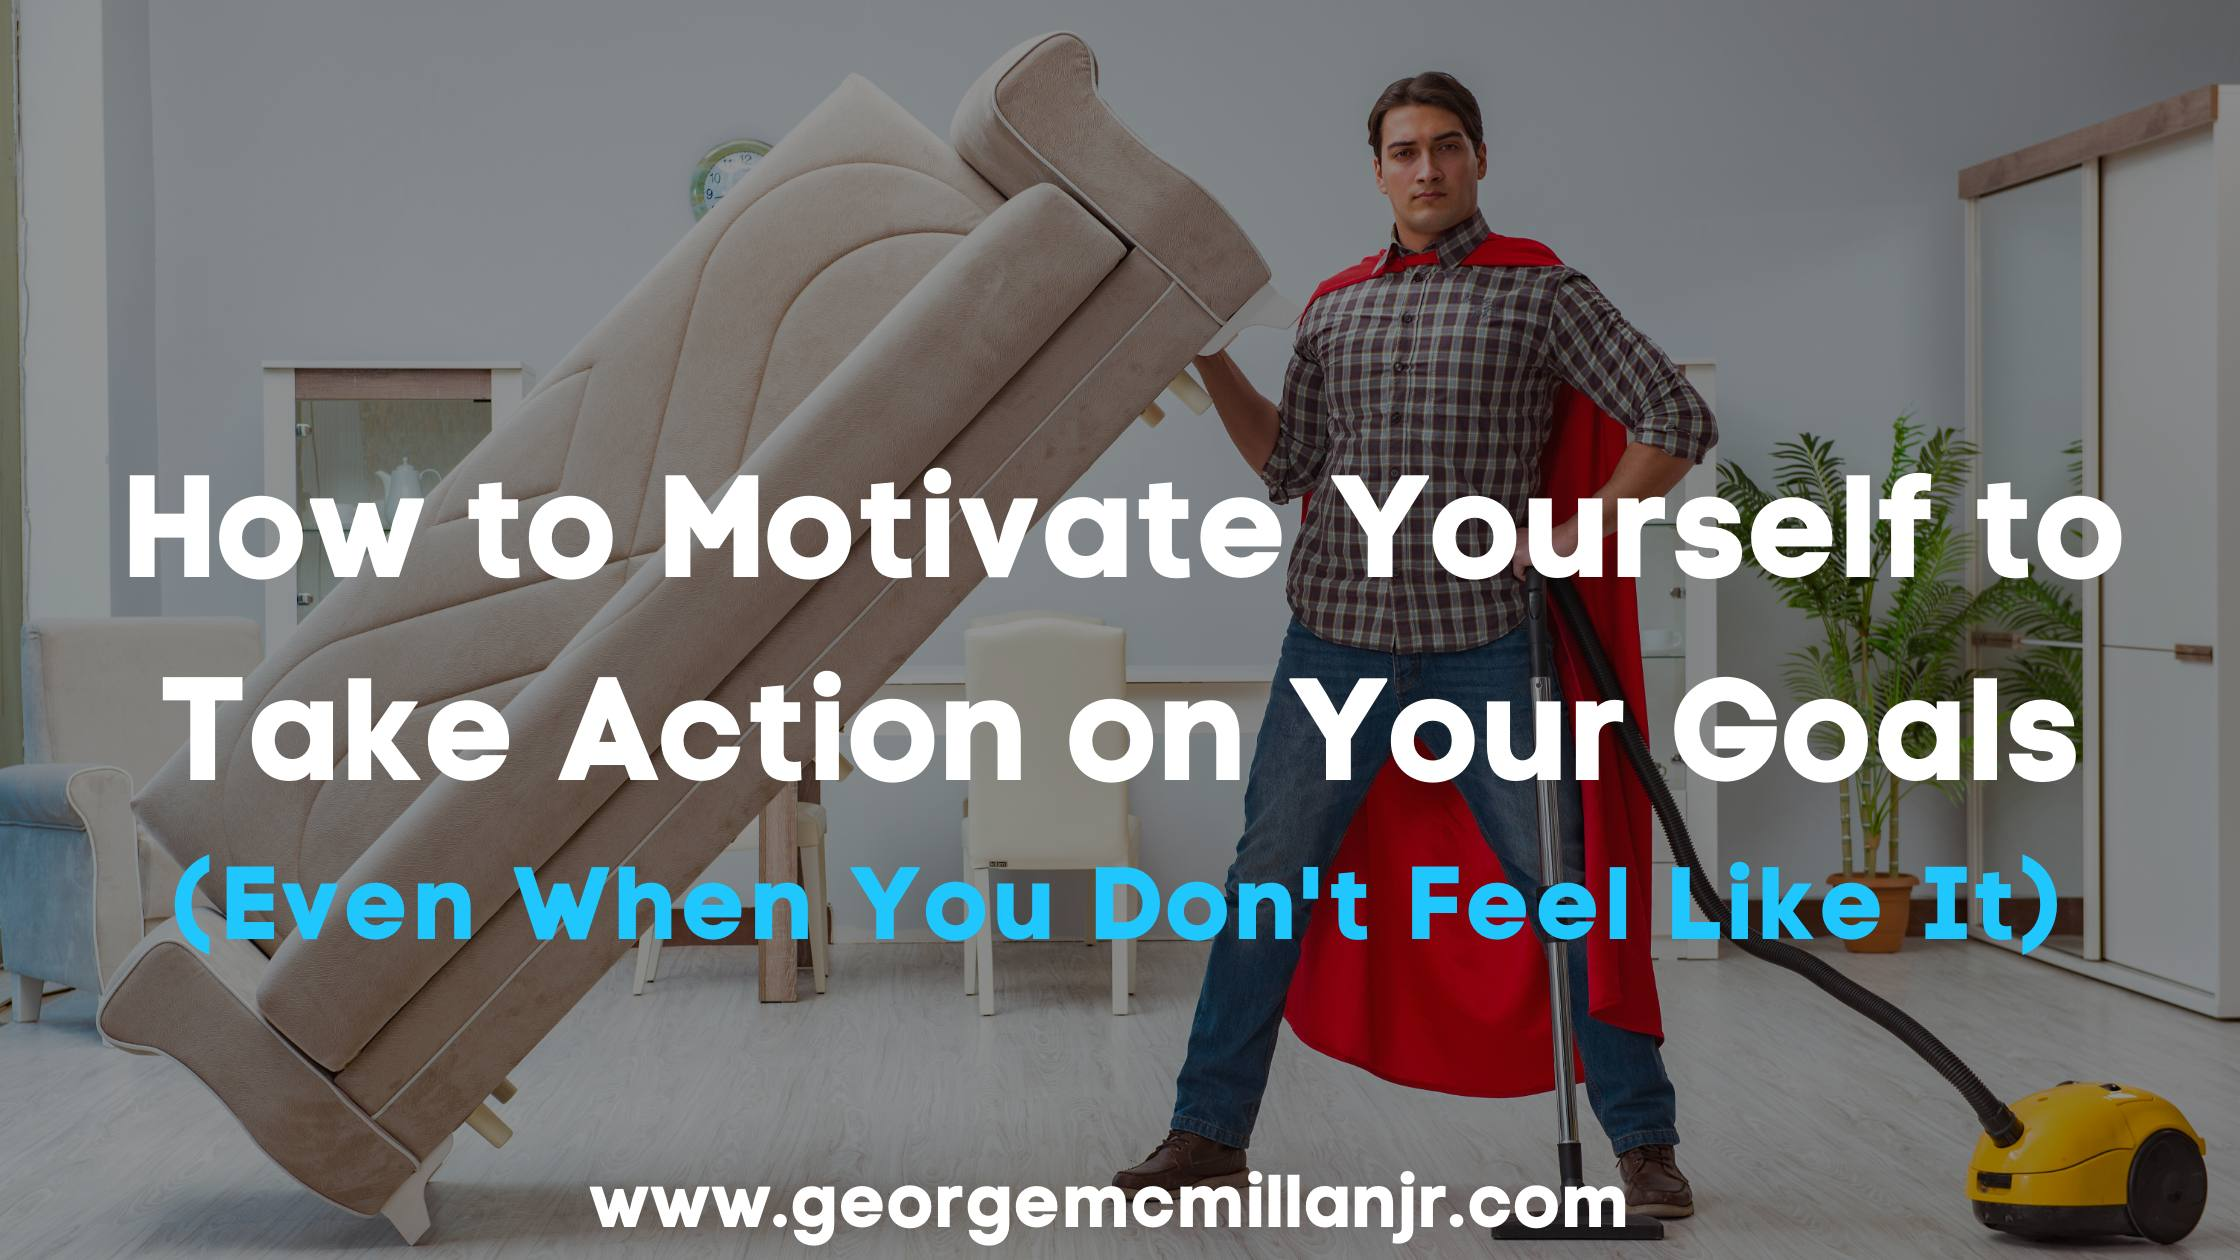 Blog Banner image of a man in a cape holding up a couch one handed and says How to Motivate Yourself to Take Action on Your Goals Even When You Don't Feel Like It.